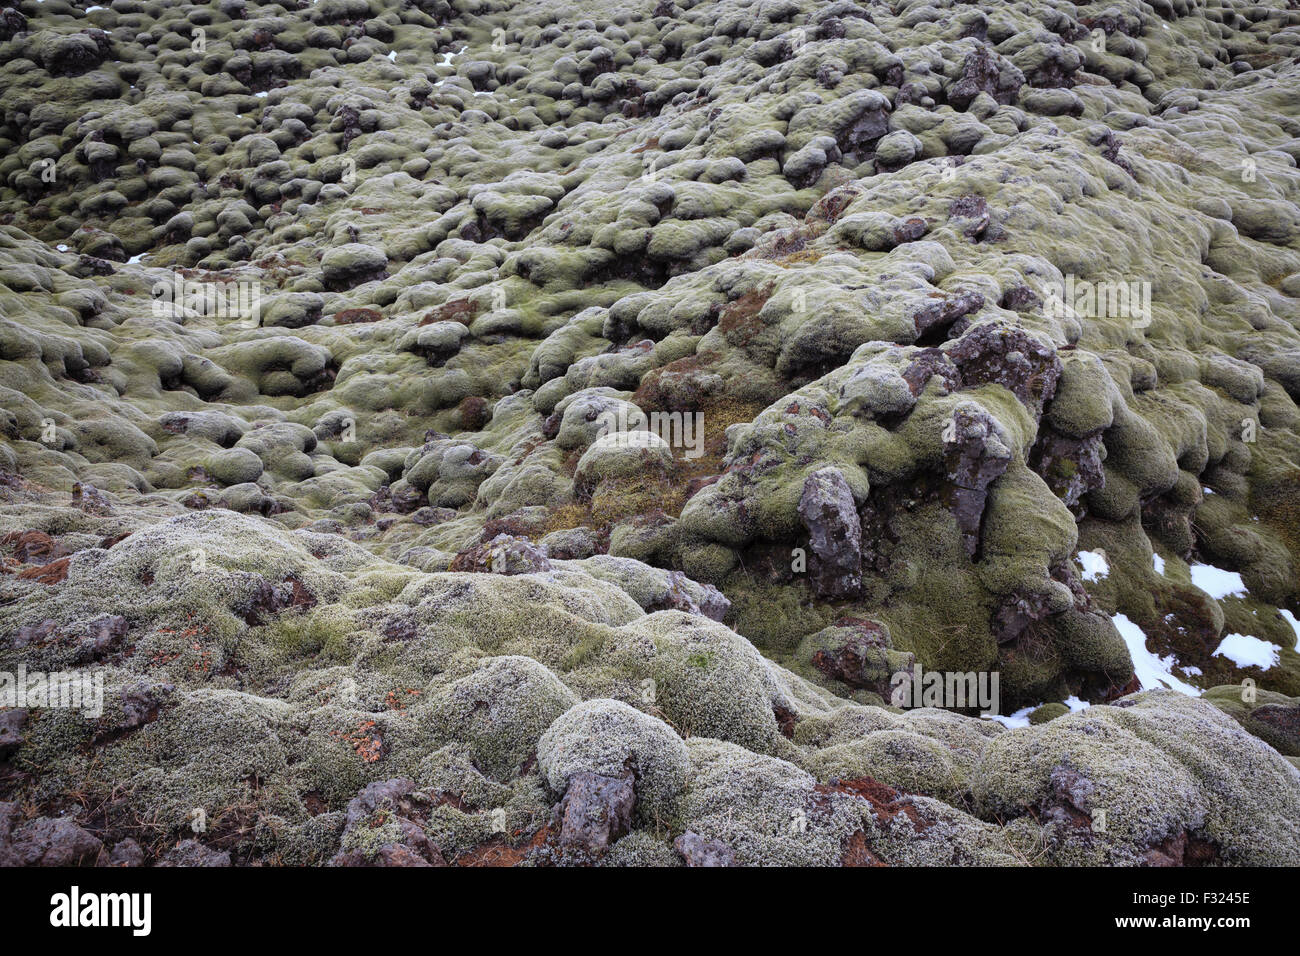 Lava field covered in green moss. South Iceland. - Stock Image